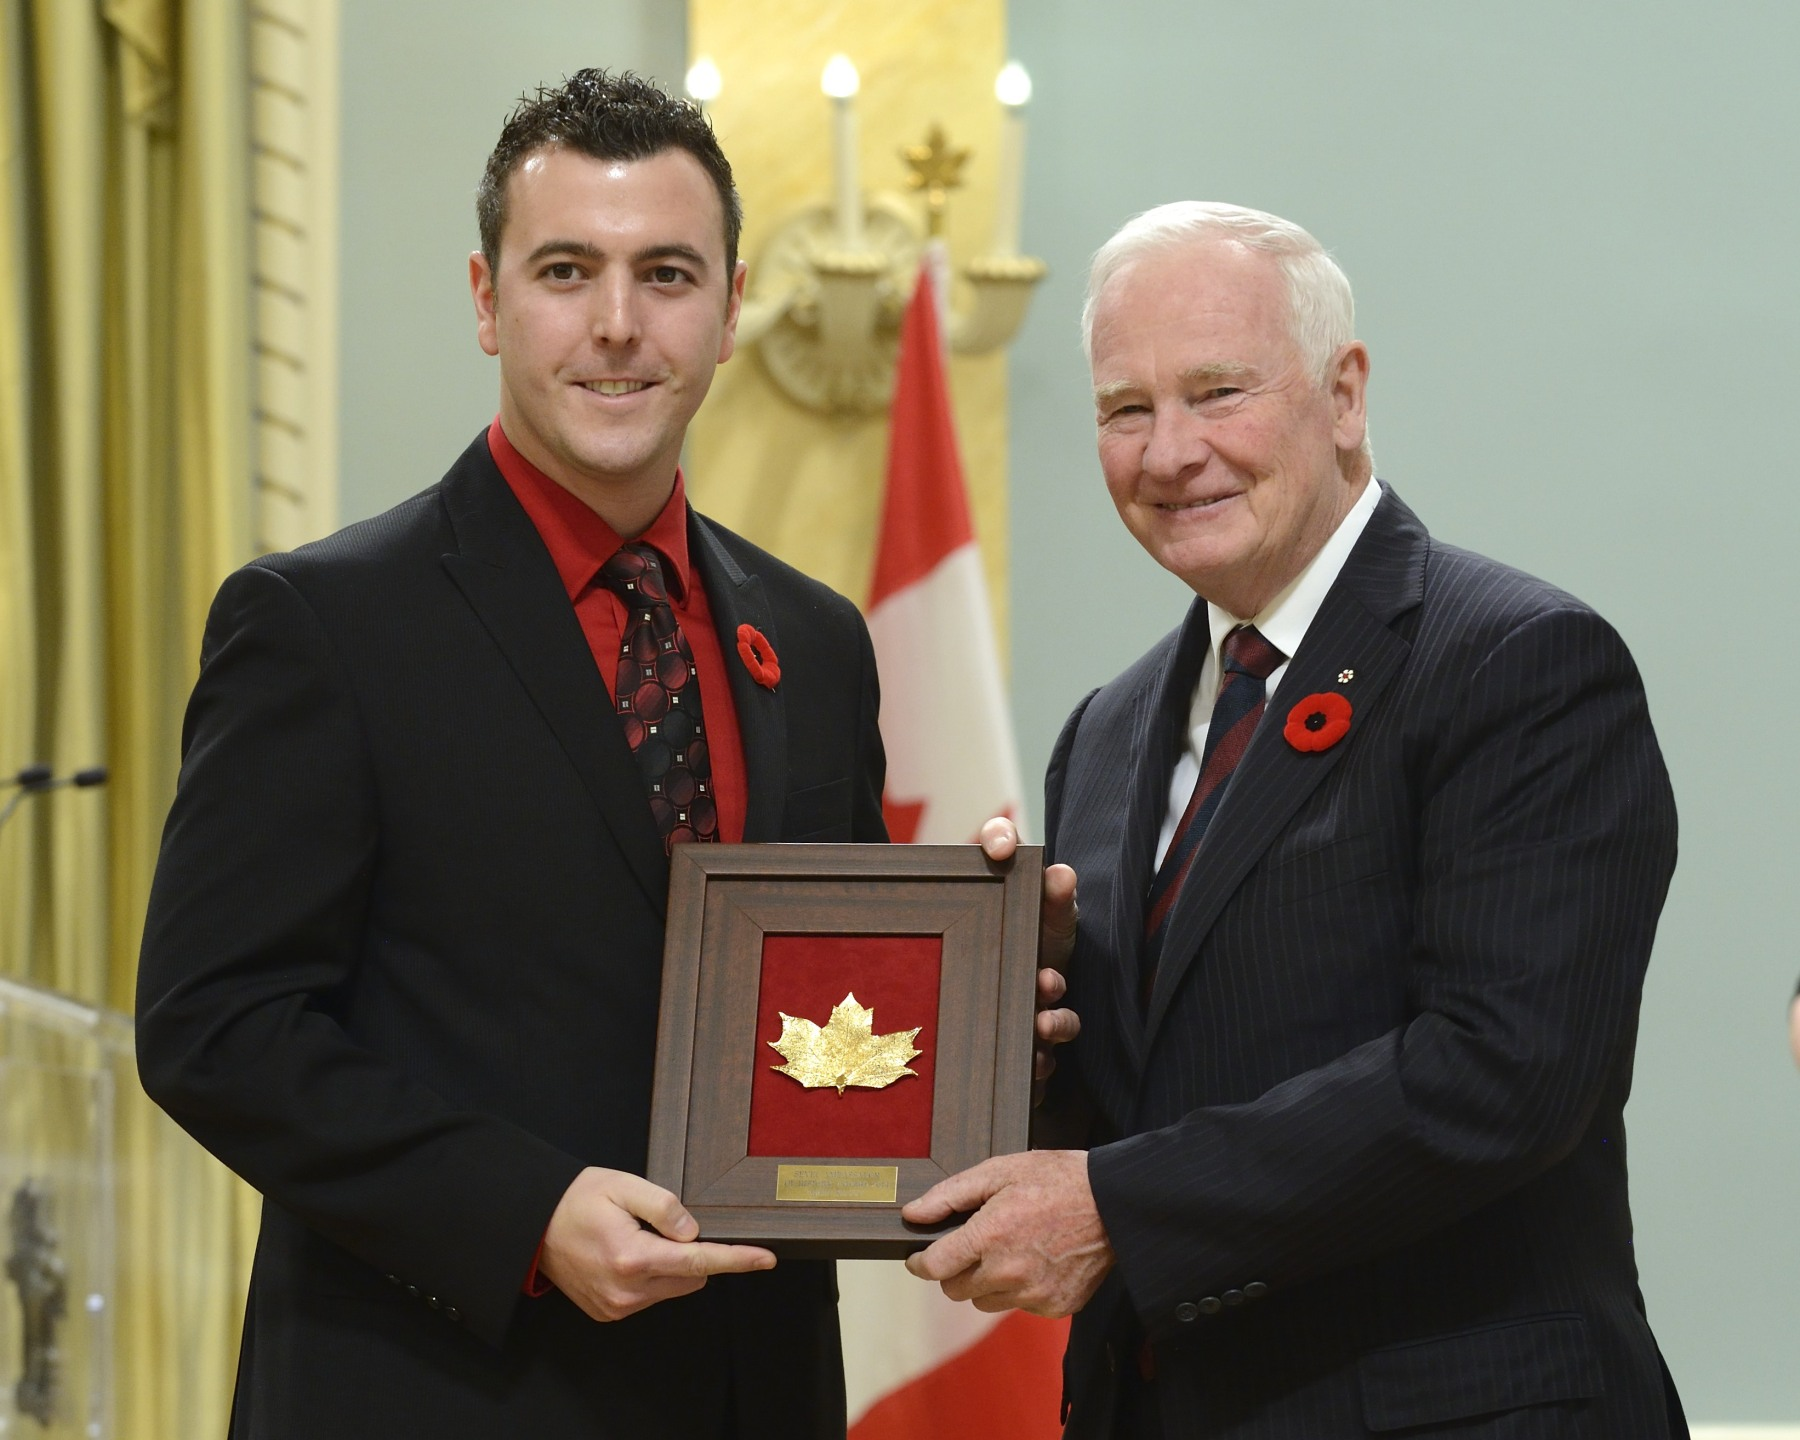 Mr. Matt Kelly, Montague Regional High School, Montague, Prince Edward Island, received the SEVEC Ambassador of History Award.